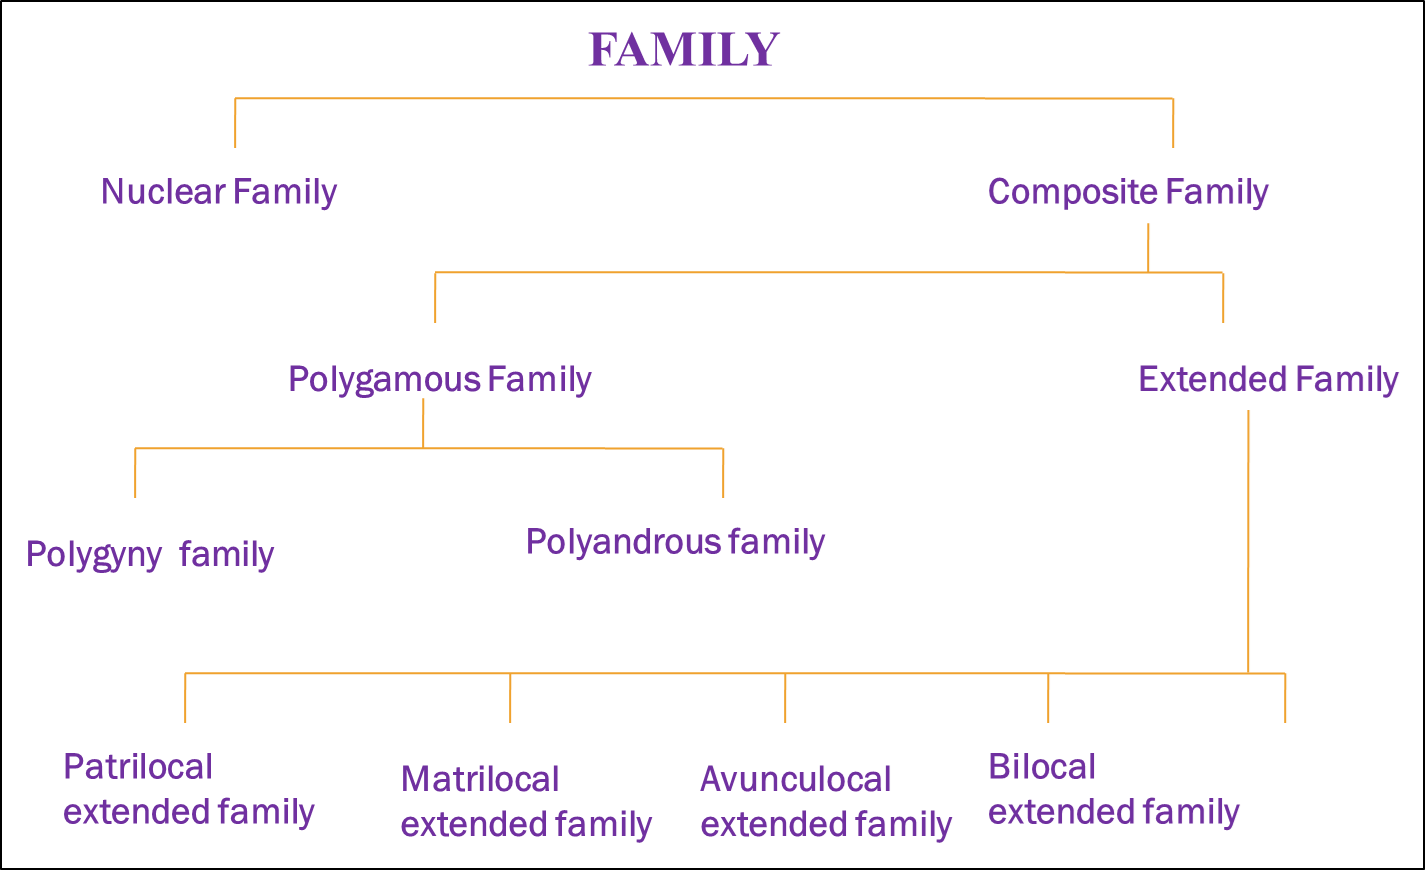 Image of Morgan's evolutionary scheme in family